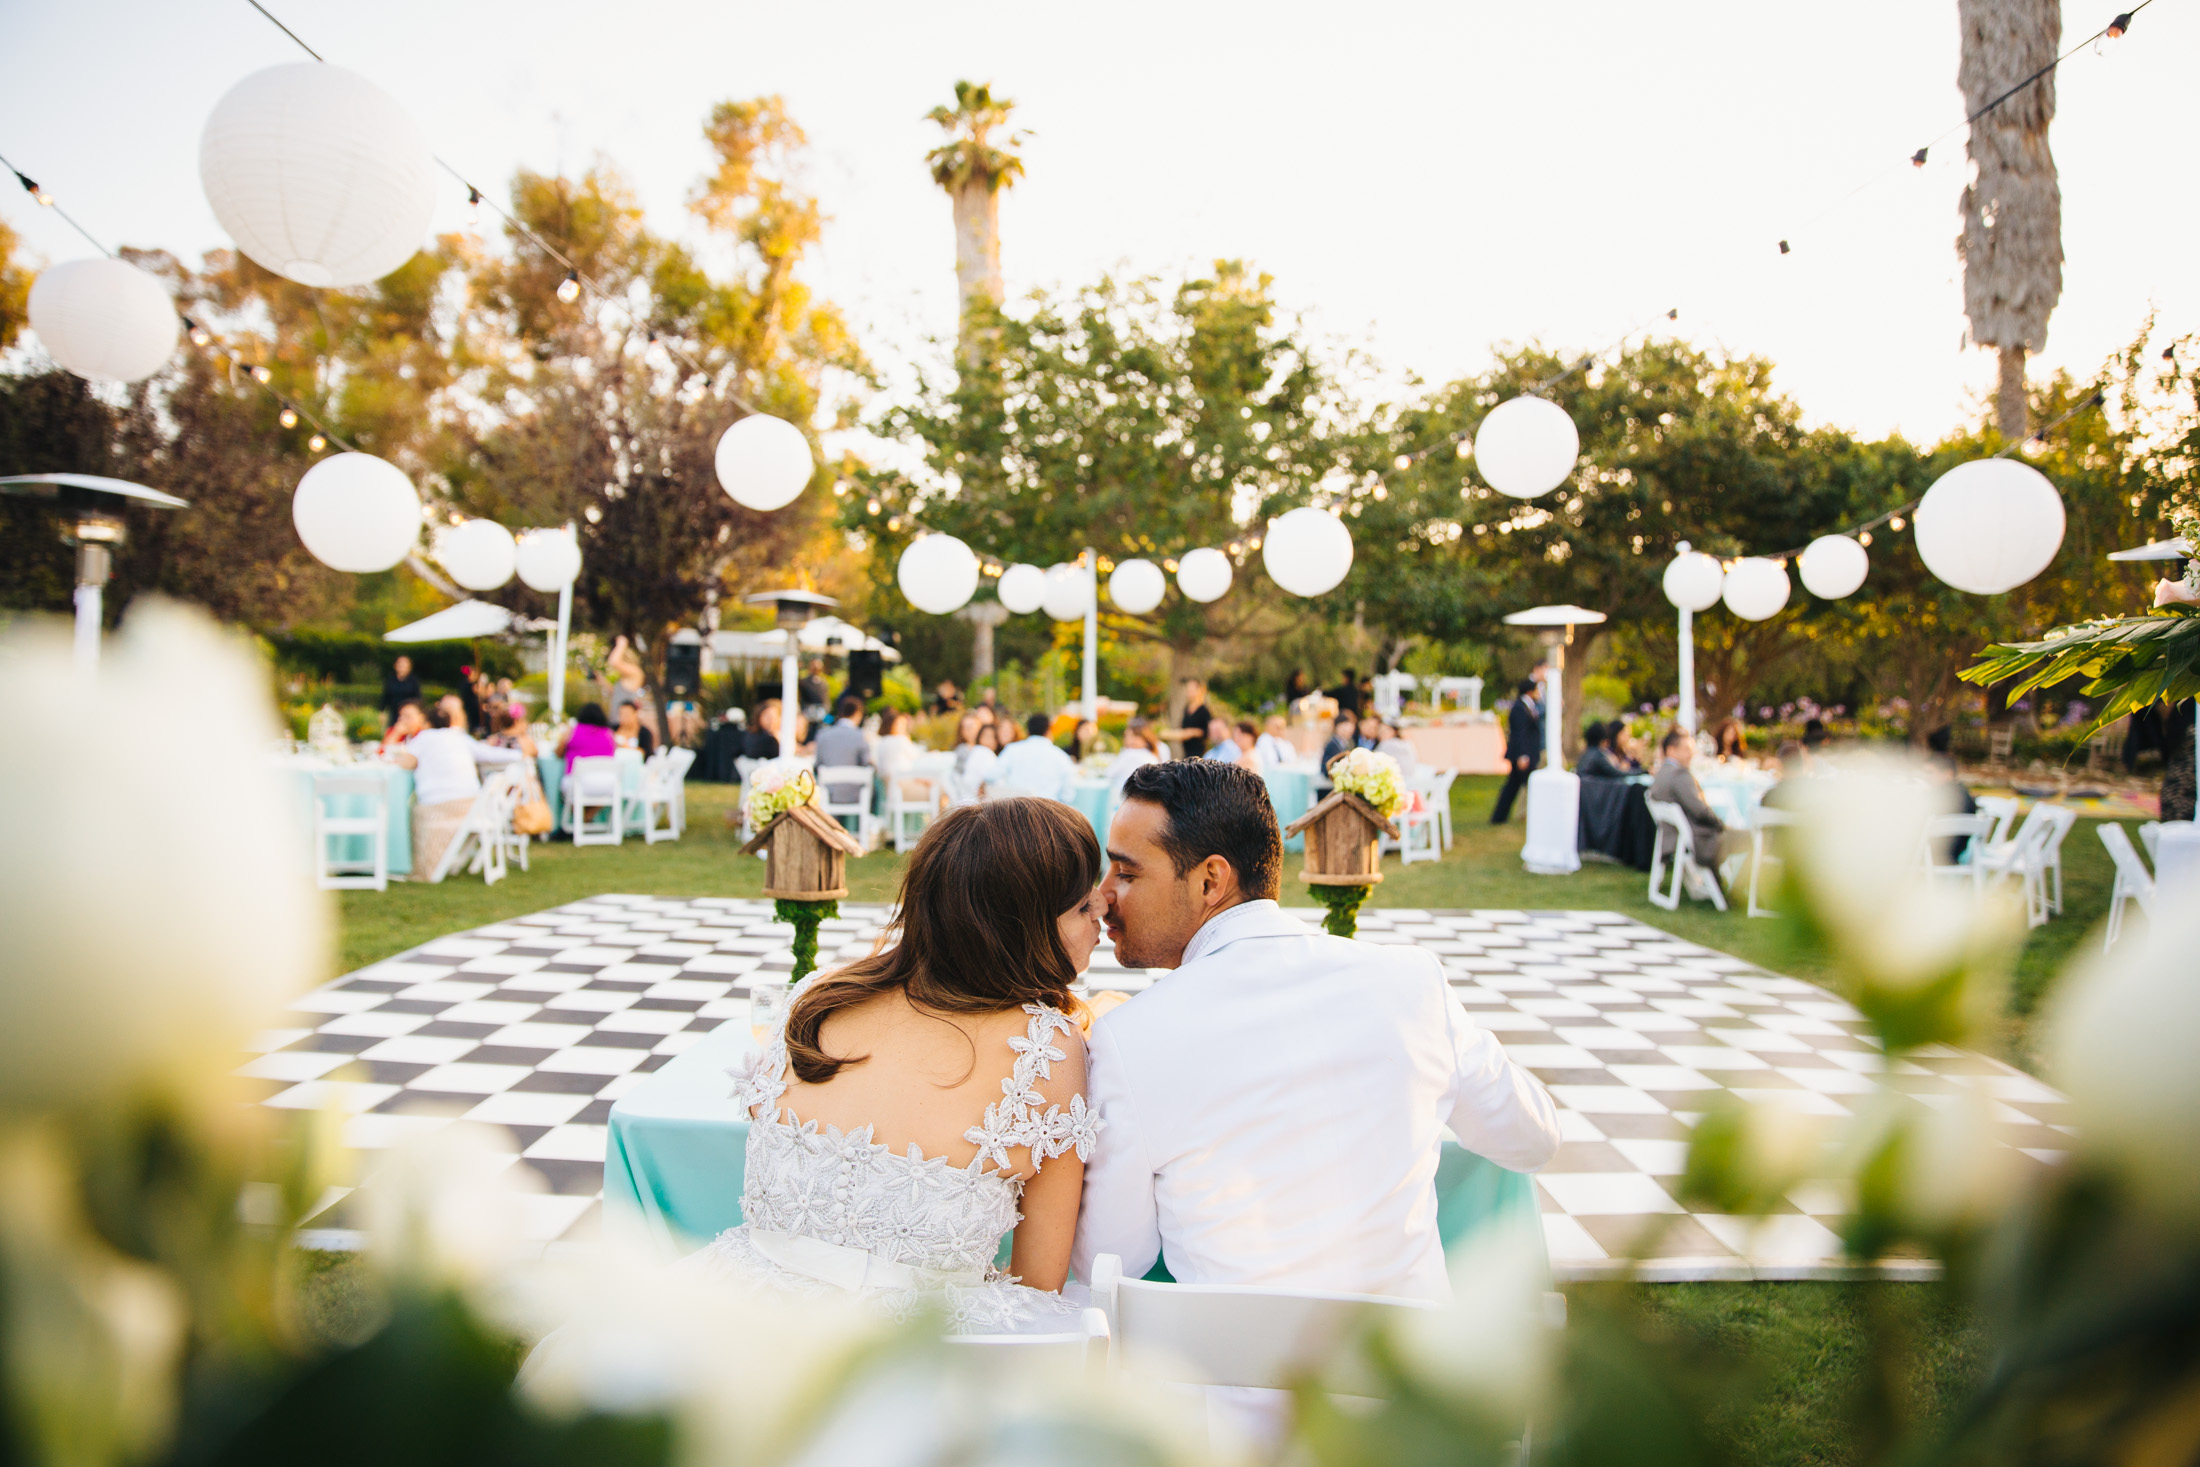 The Most Beautiful Wedding Venues in Los Angeles PureWow